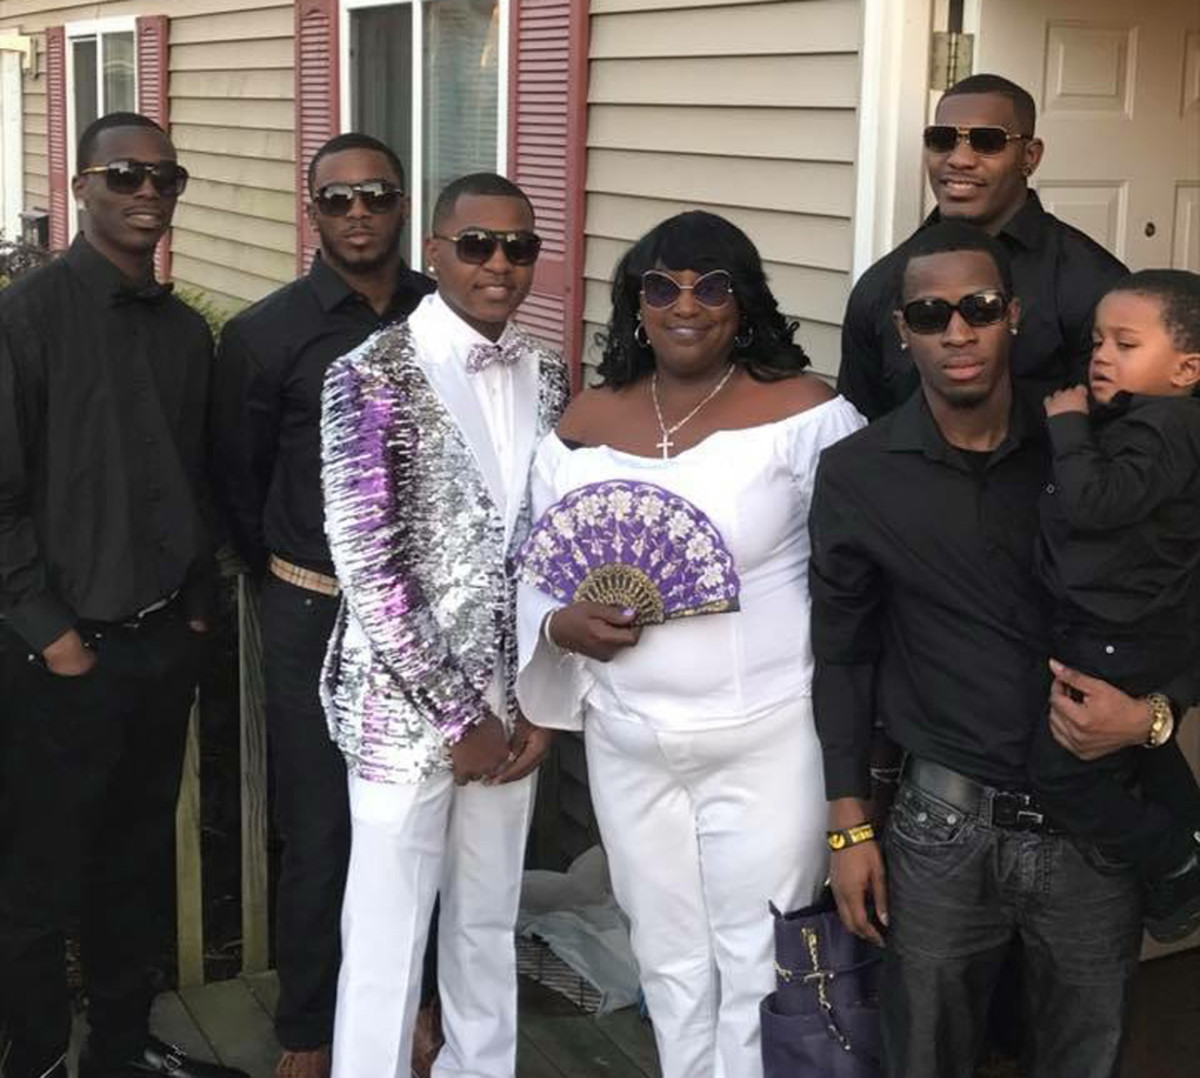 Devon, with mom Yvette, Desmond (back row right) and the rest of the prom crew.